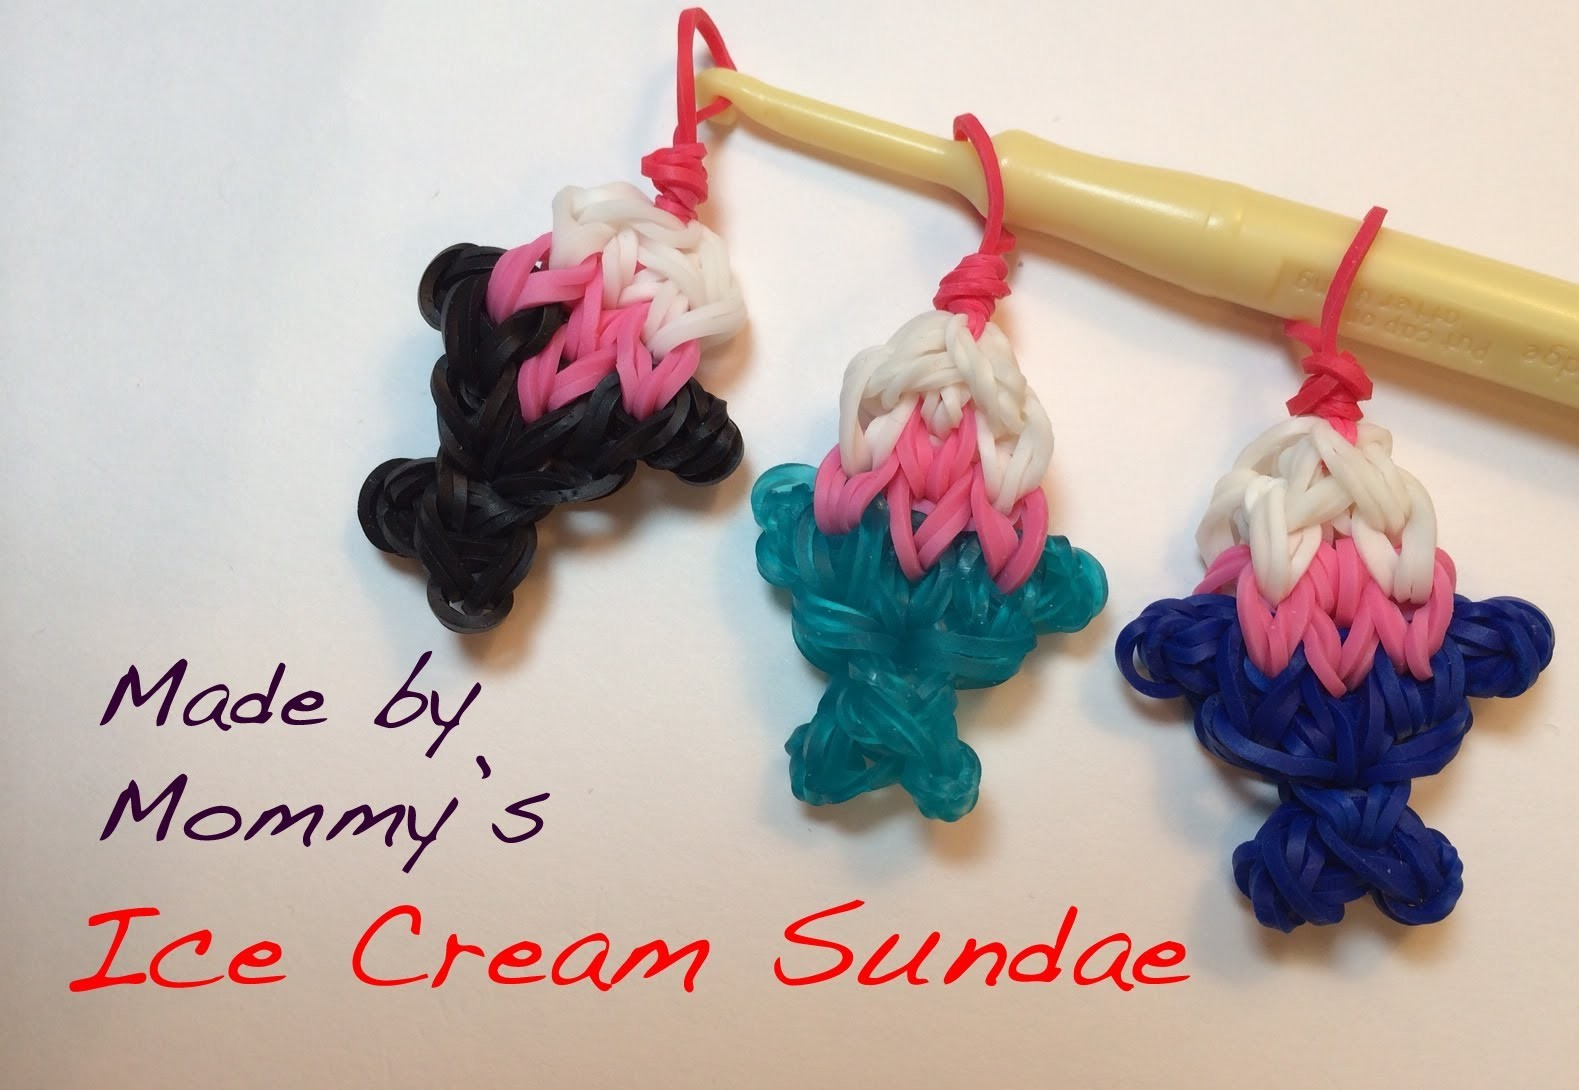 Ice Cream Sundae Charm on the Rainbow Loom